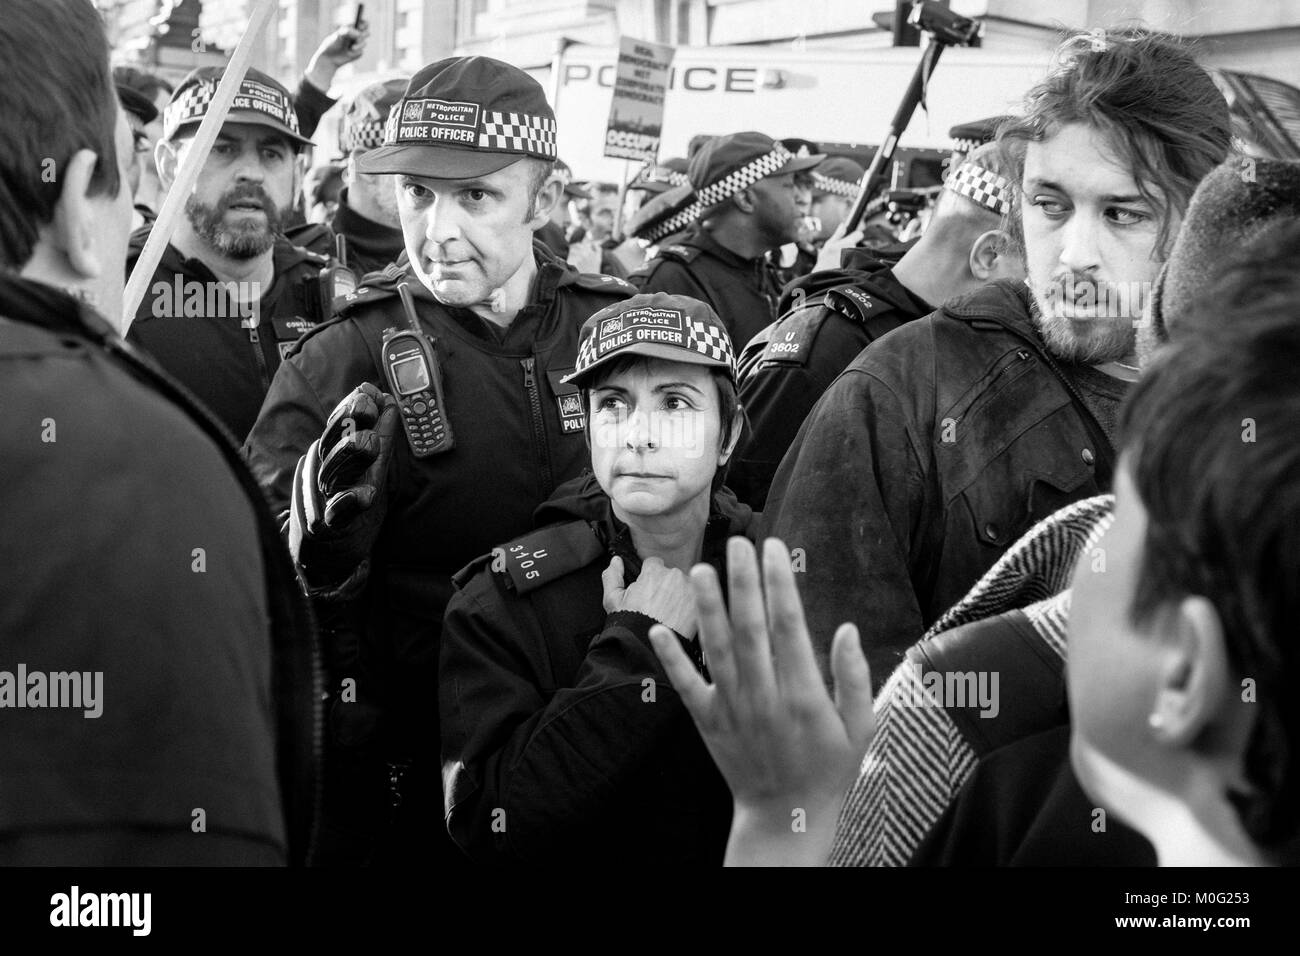 London Black and white street photography: Metropolitan Police Officers confront demonstrators during protest march - Stock Image